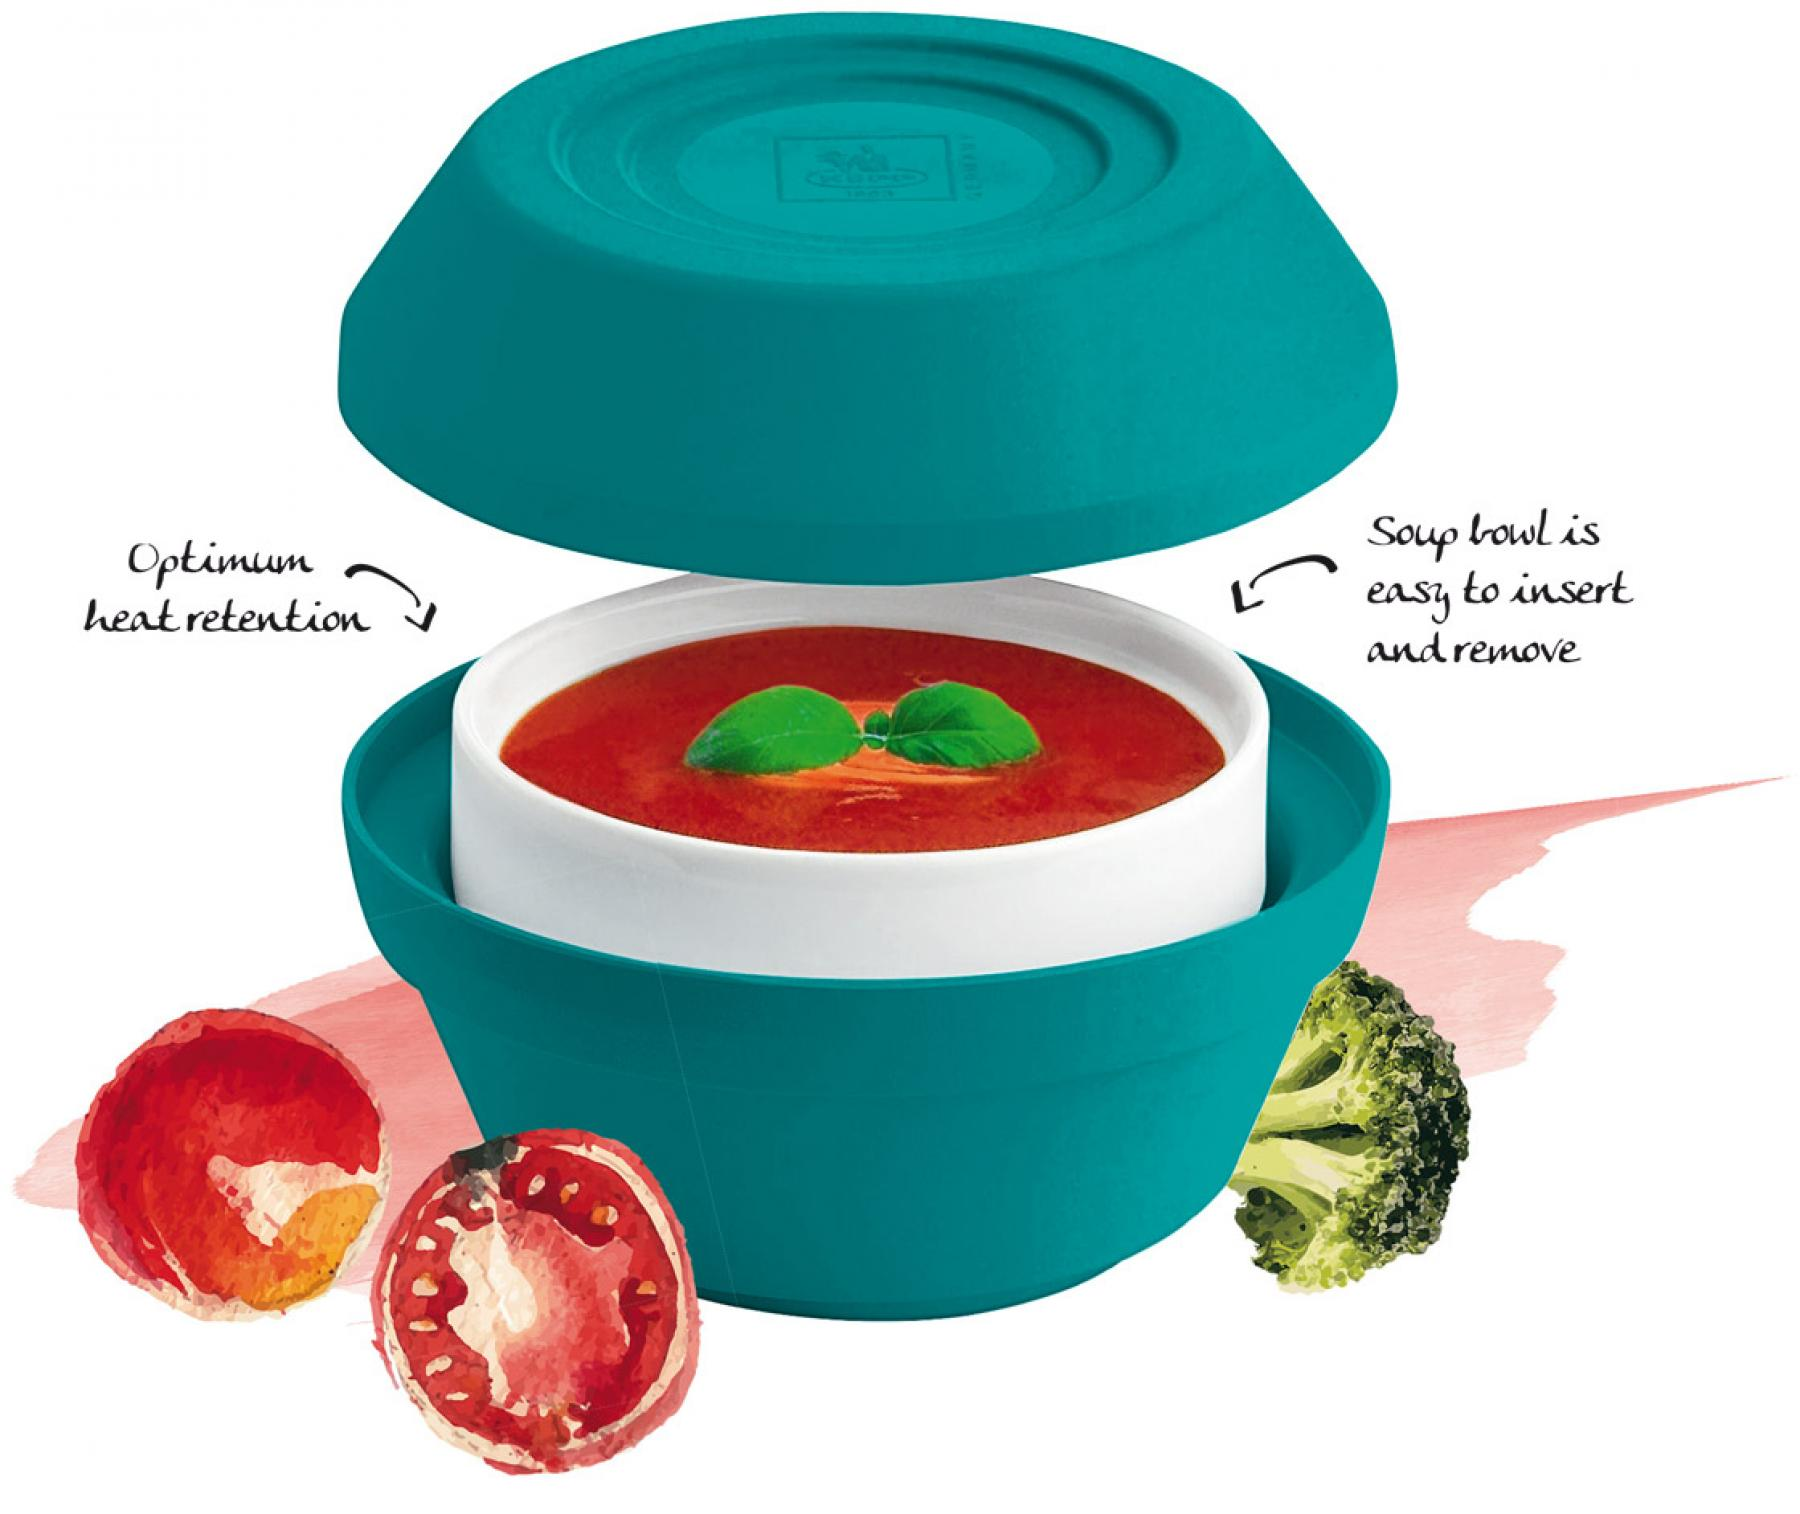 HEPP HOSPITALA Soup bowl sets